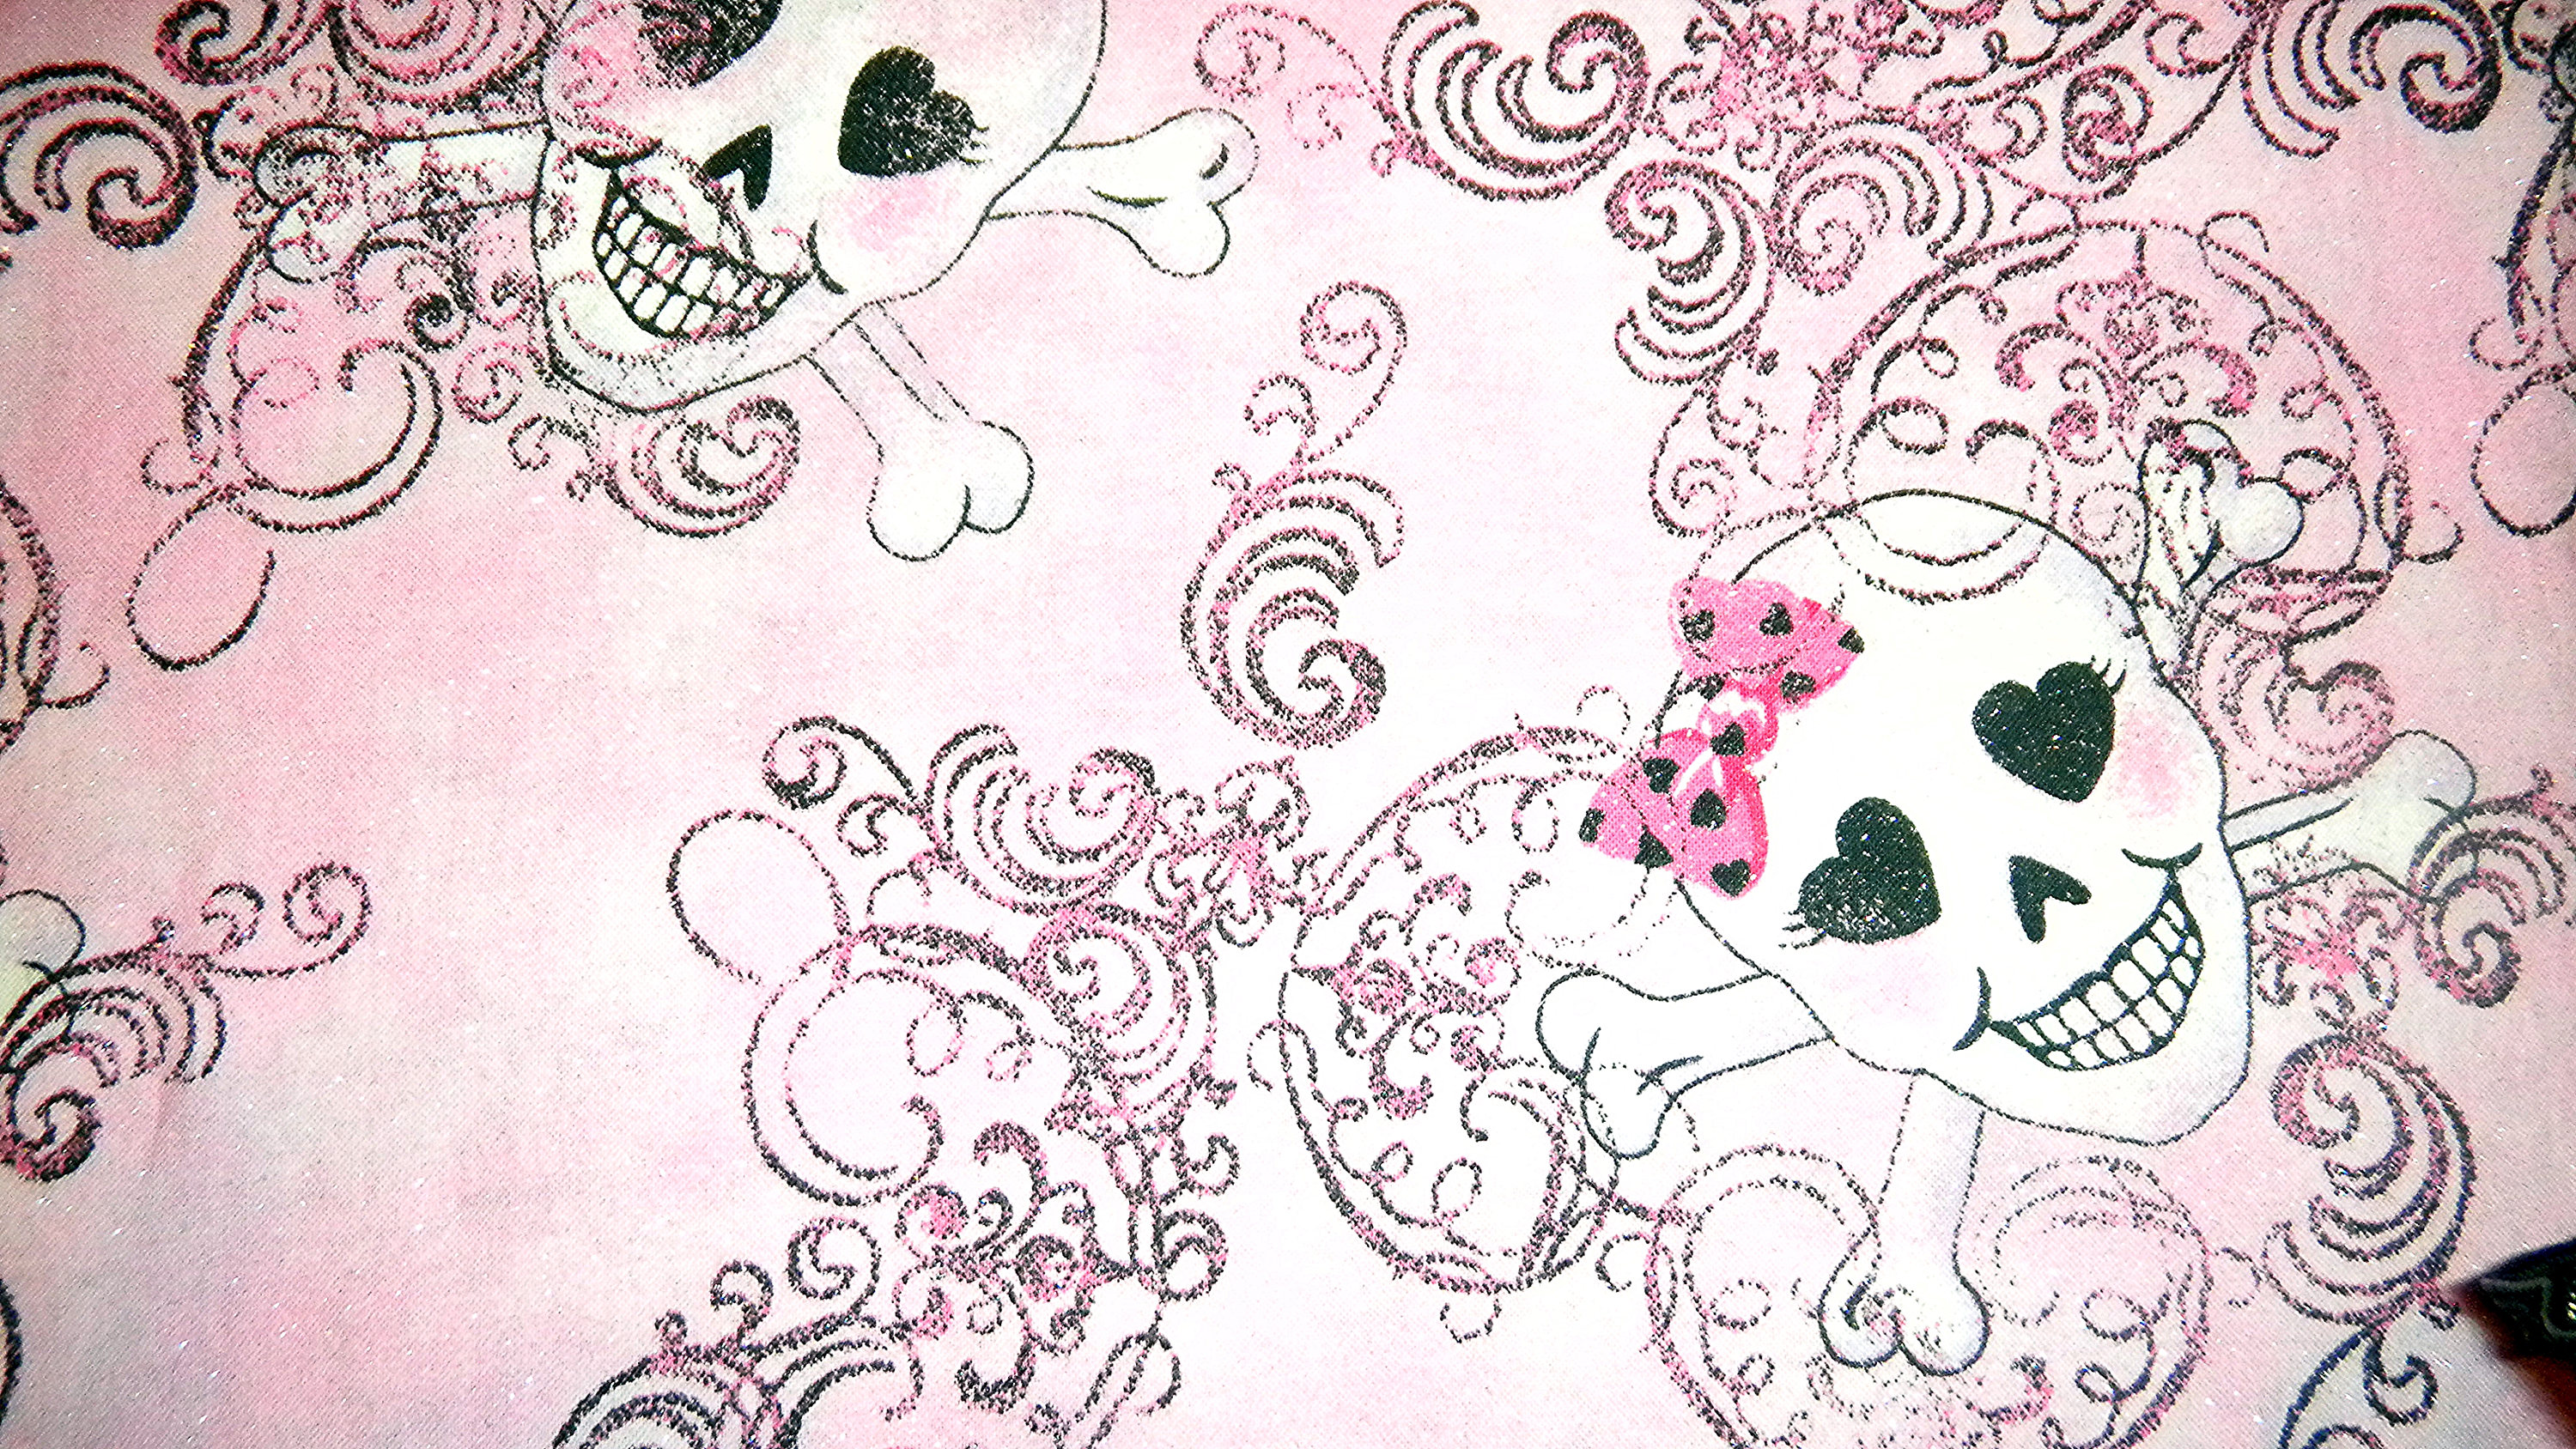 Drawn swirl girly Get  background Shipping pattern